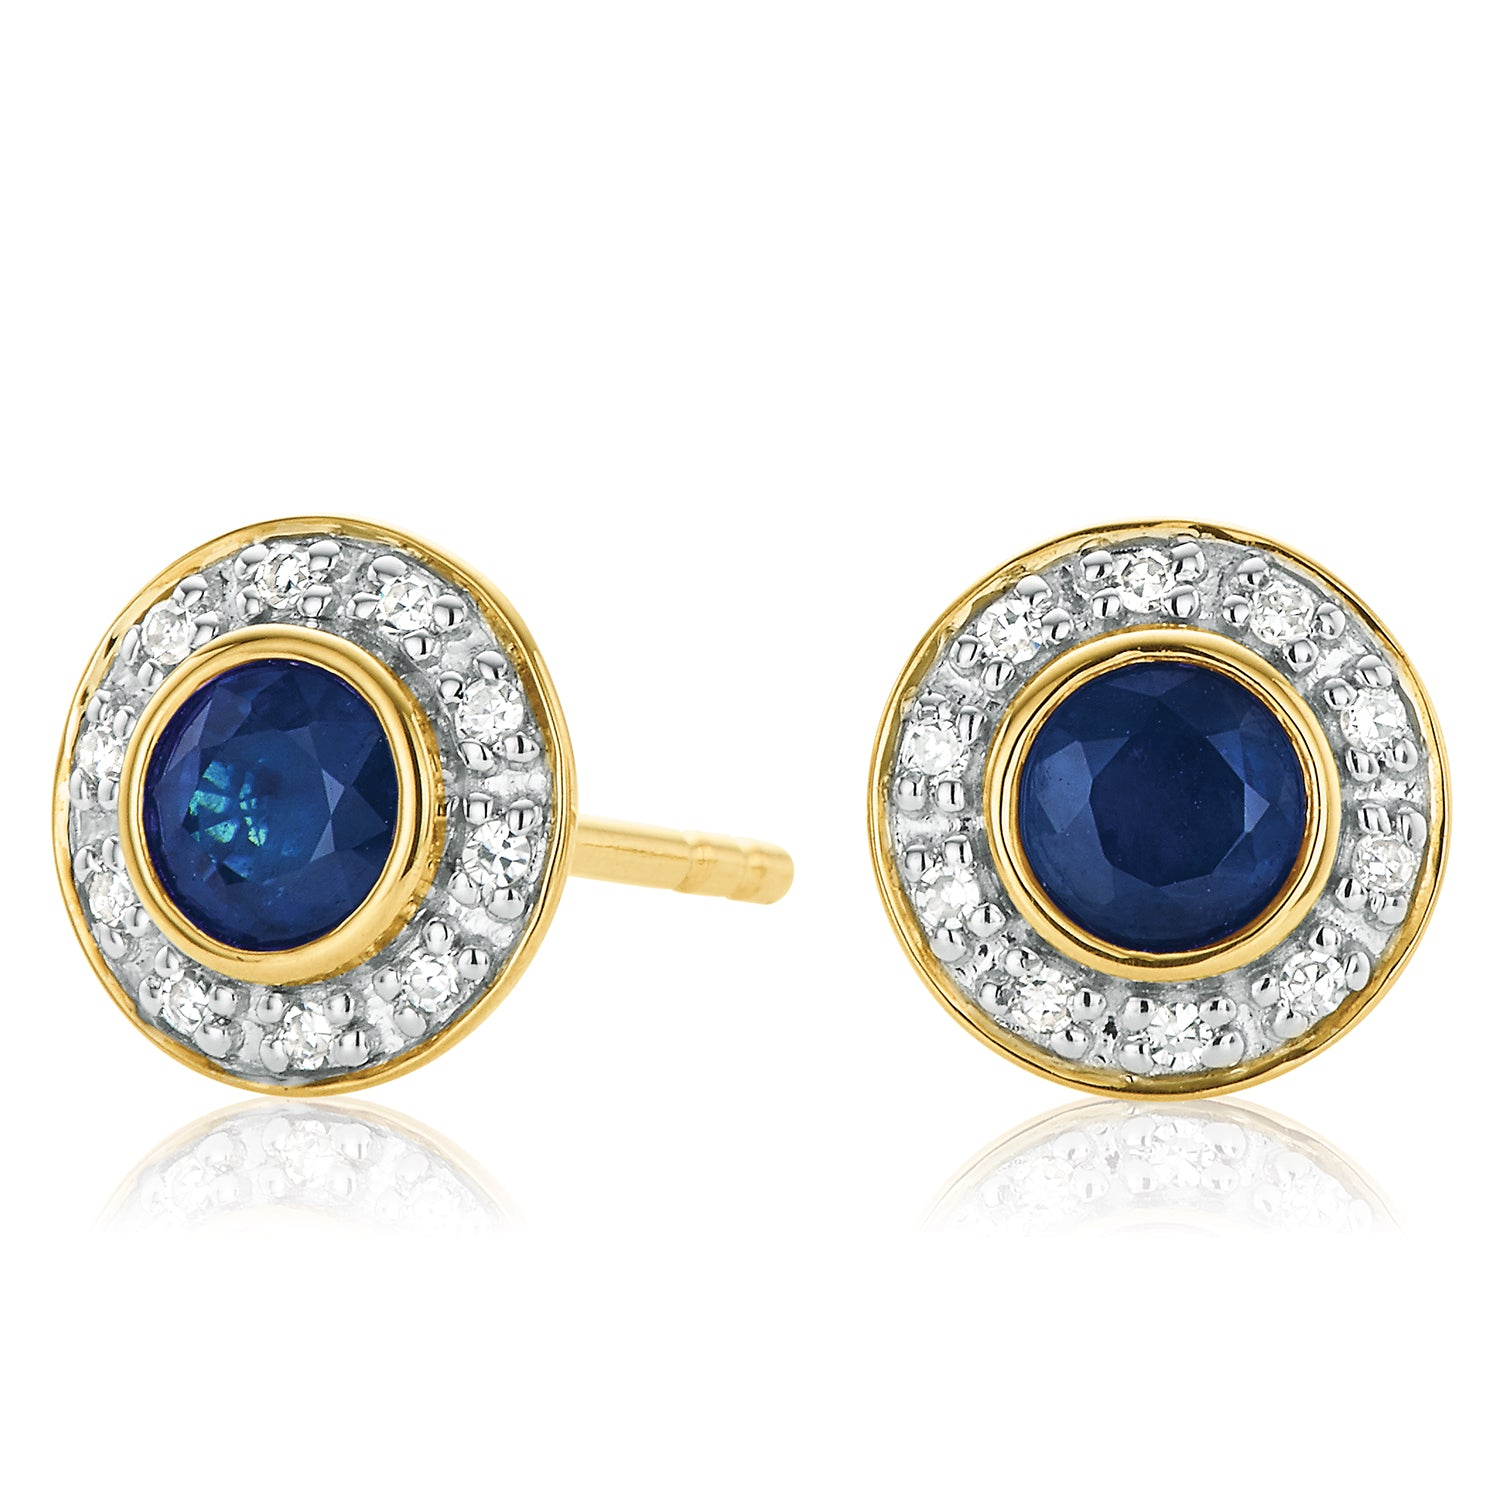 9ct Yellow Gold Round Brilliant Cut Sapphire Diamond Set